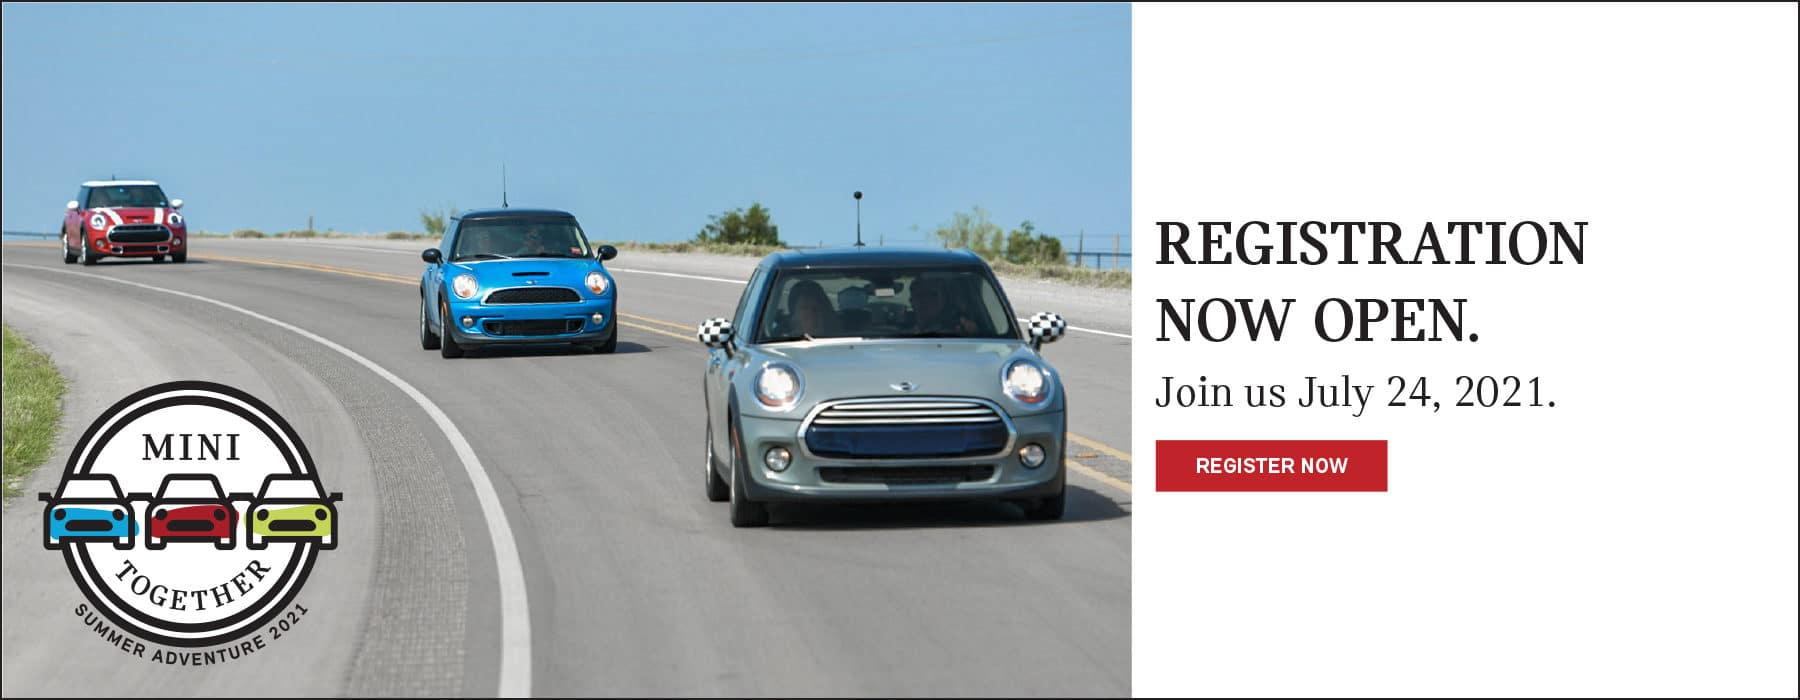 JOIN US ON JULY 24TH FOR THE MINI TOGETHER EVENT. CLICK TO REGISTER NOW